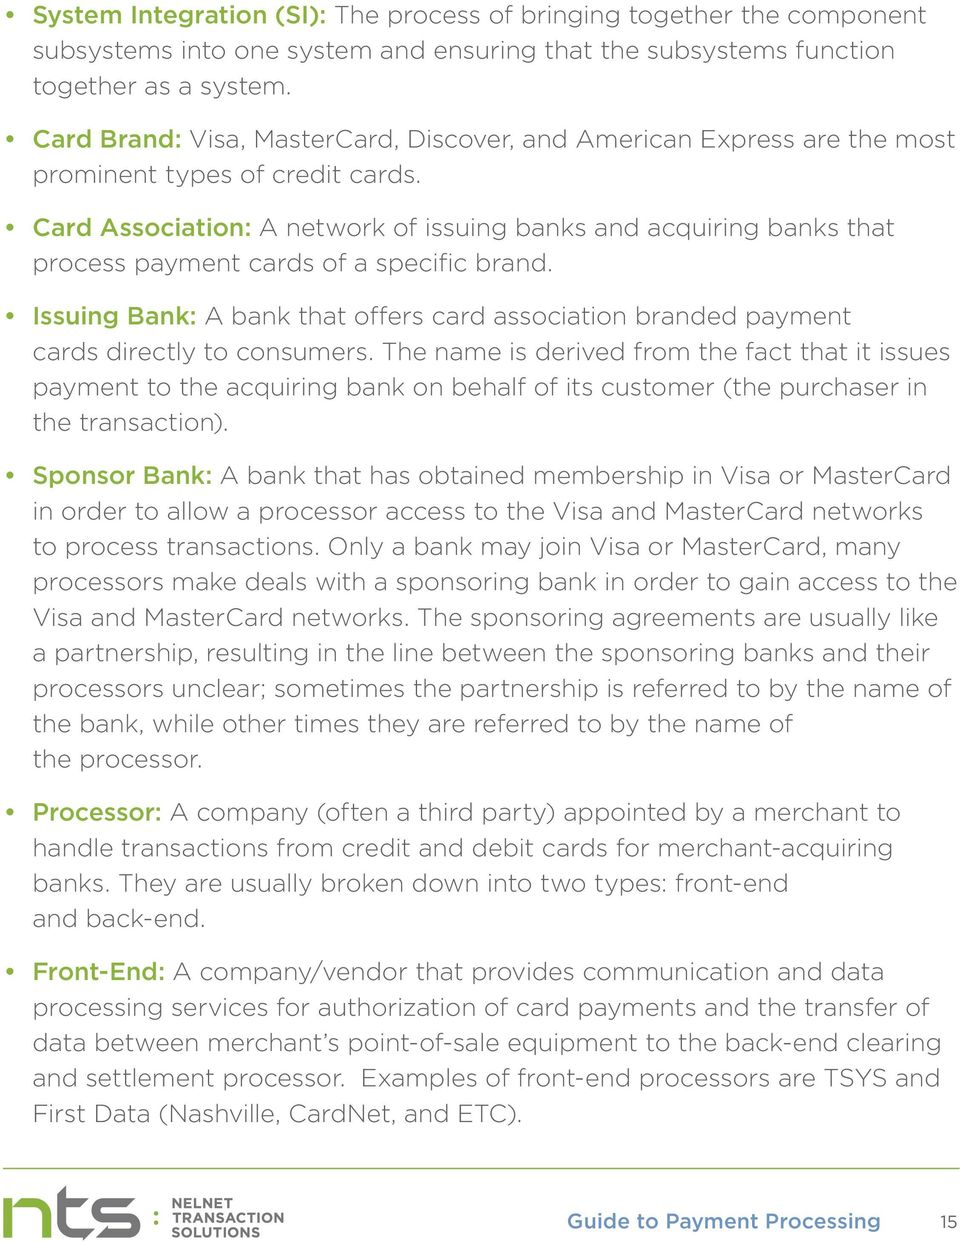 Card Association: A network of issuing banks and acquiring banks that process payment cards of a specific brand.